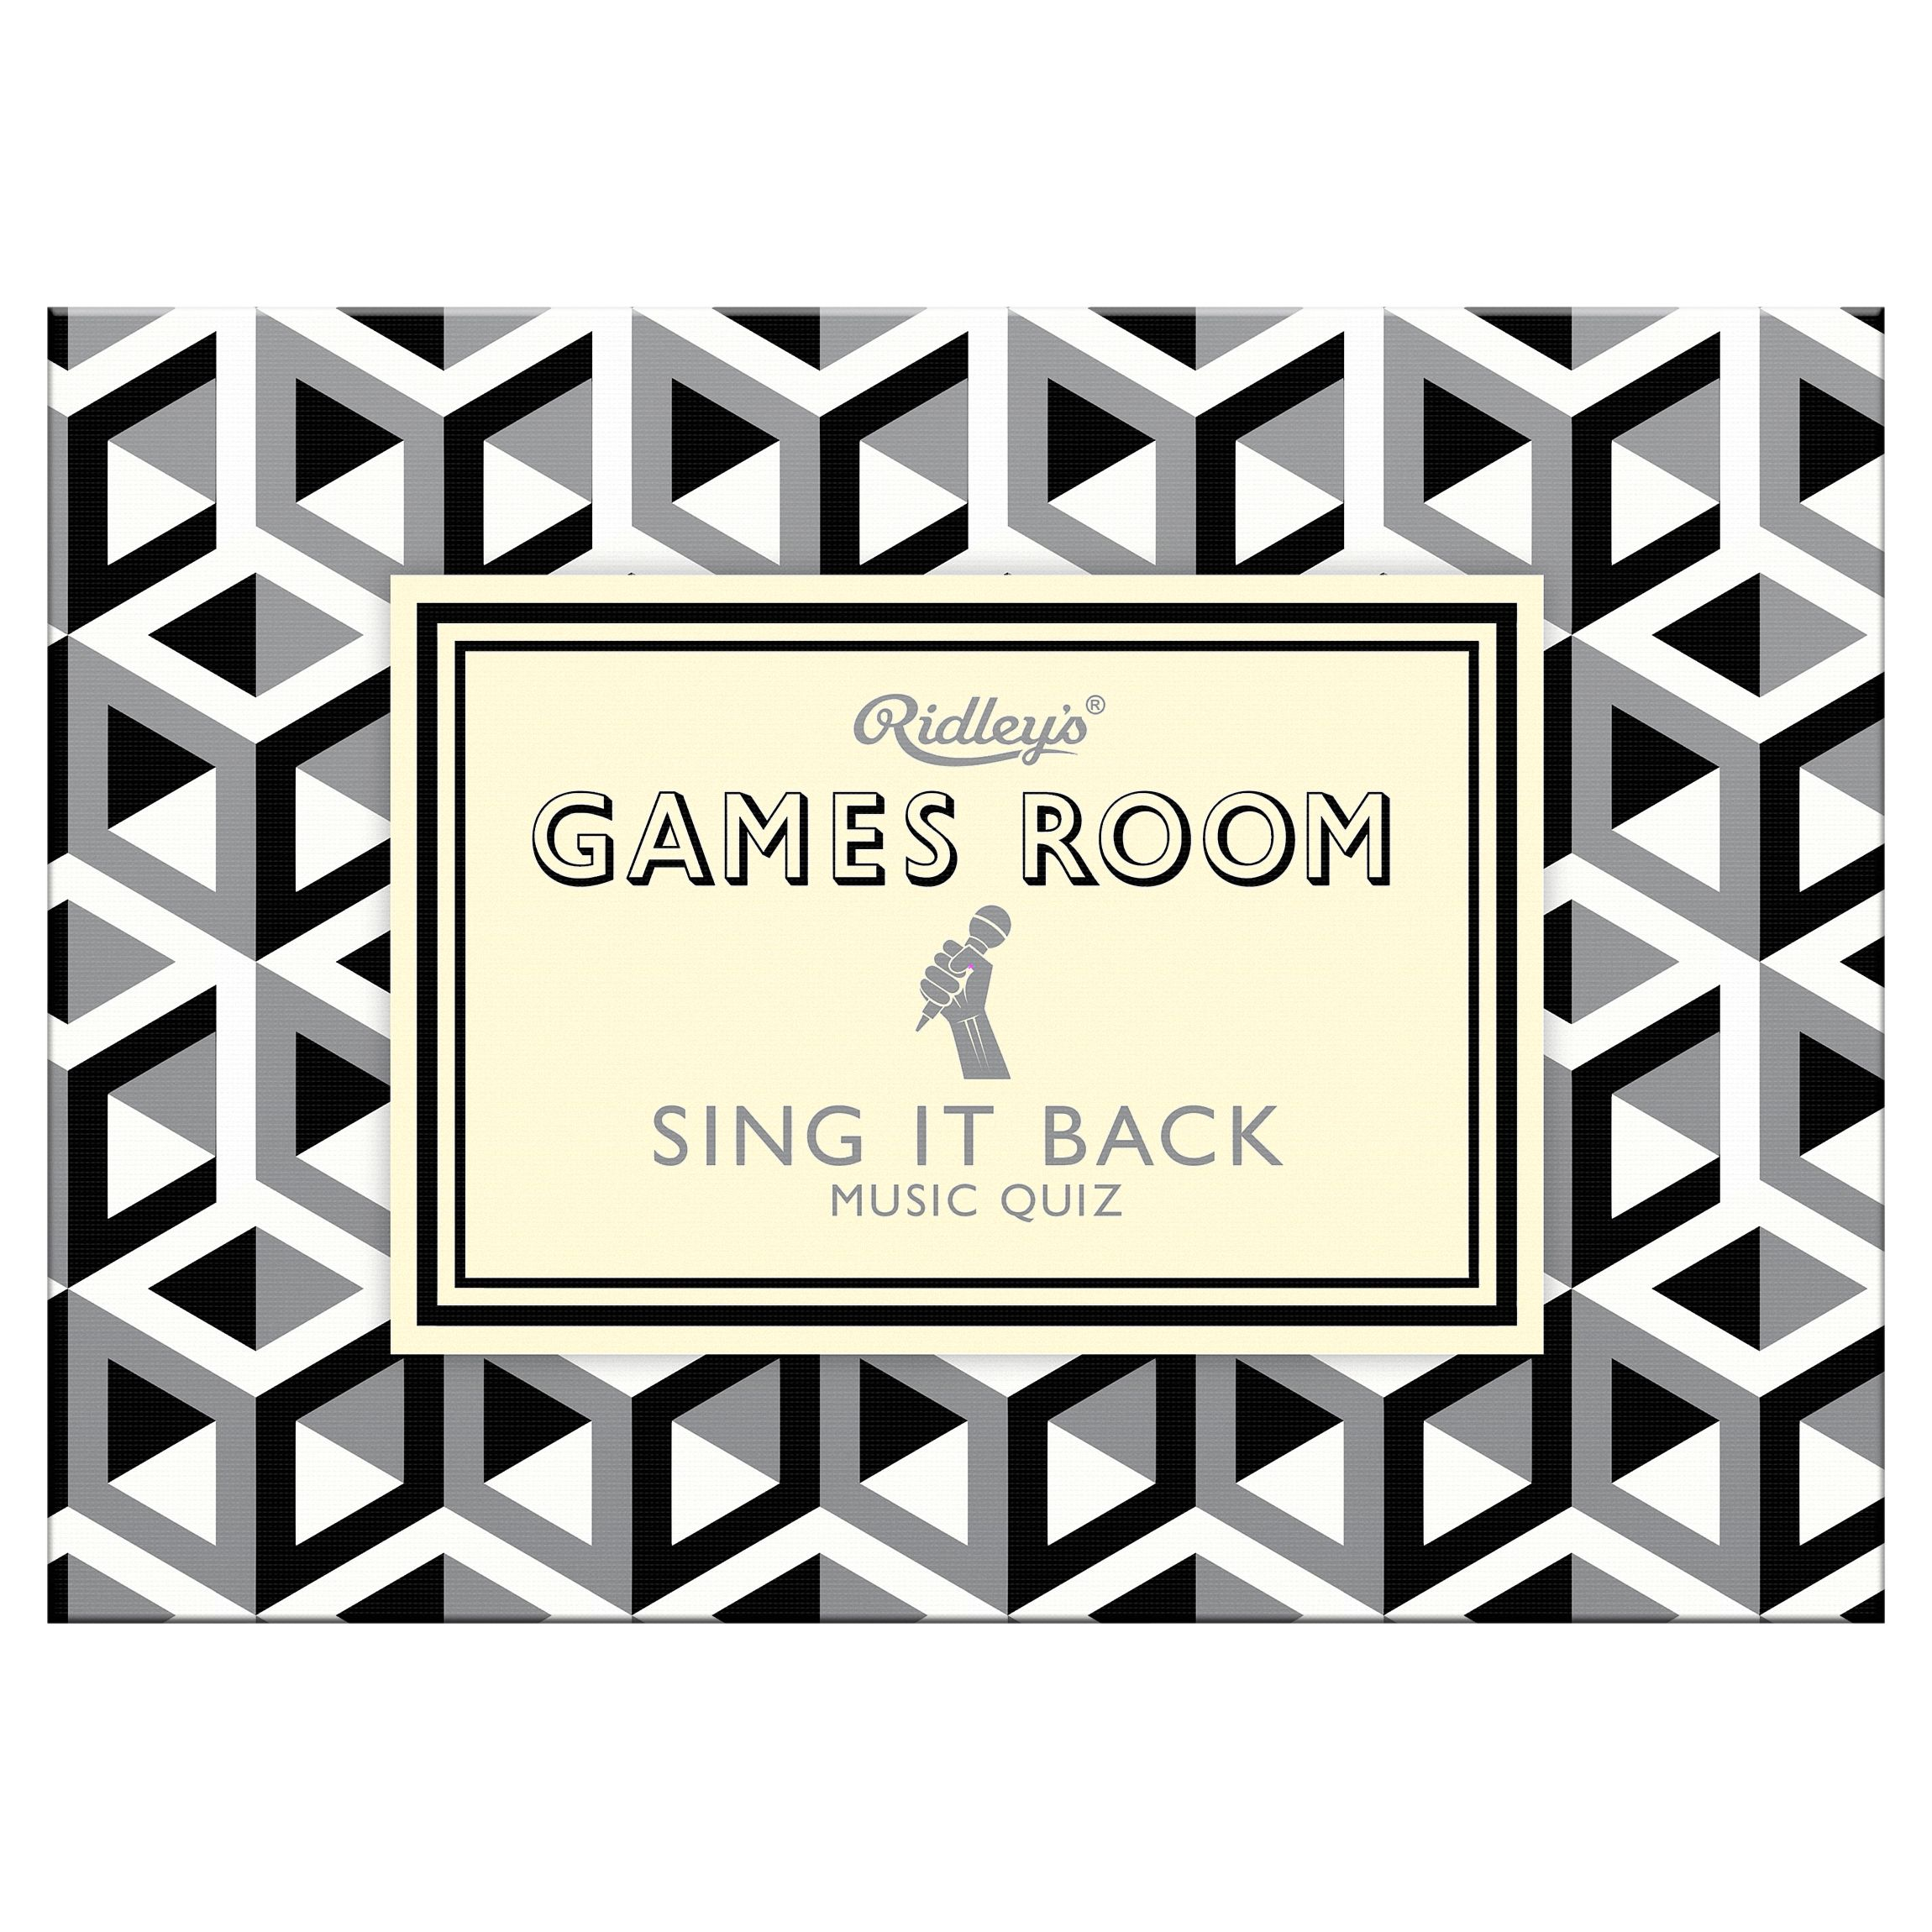 Ridley's Ridley's Games Room Sing It Back Game